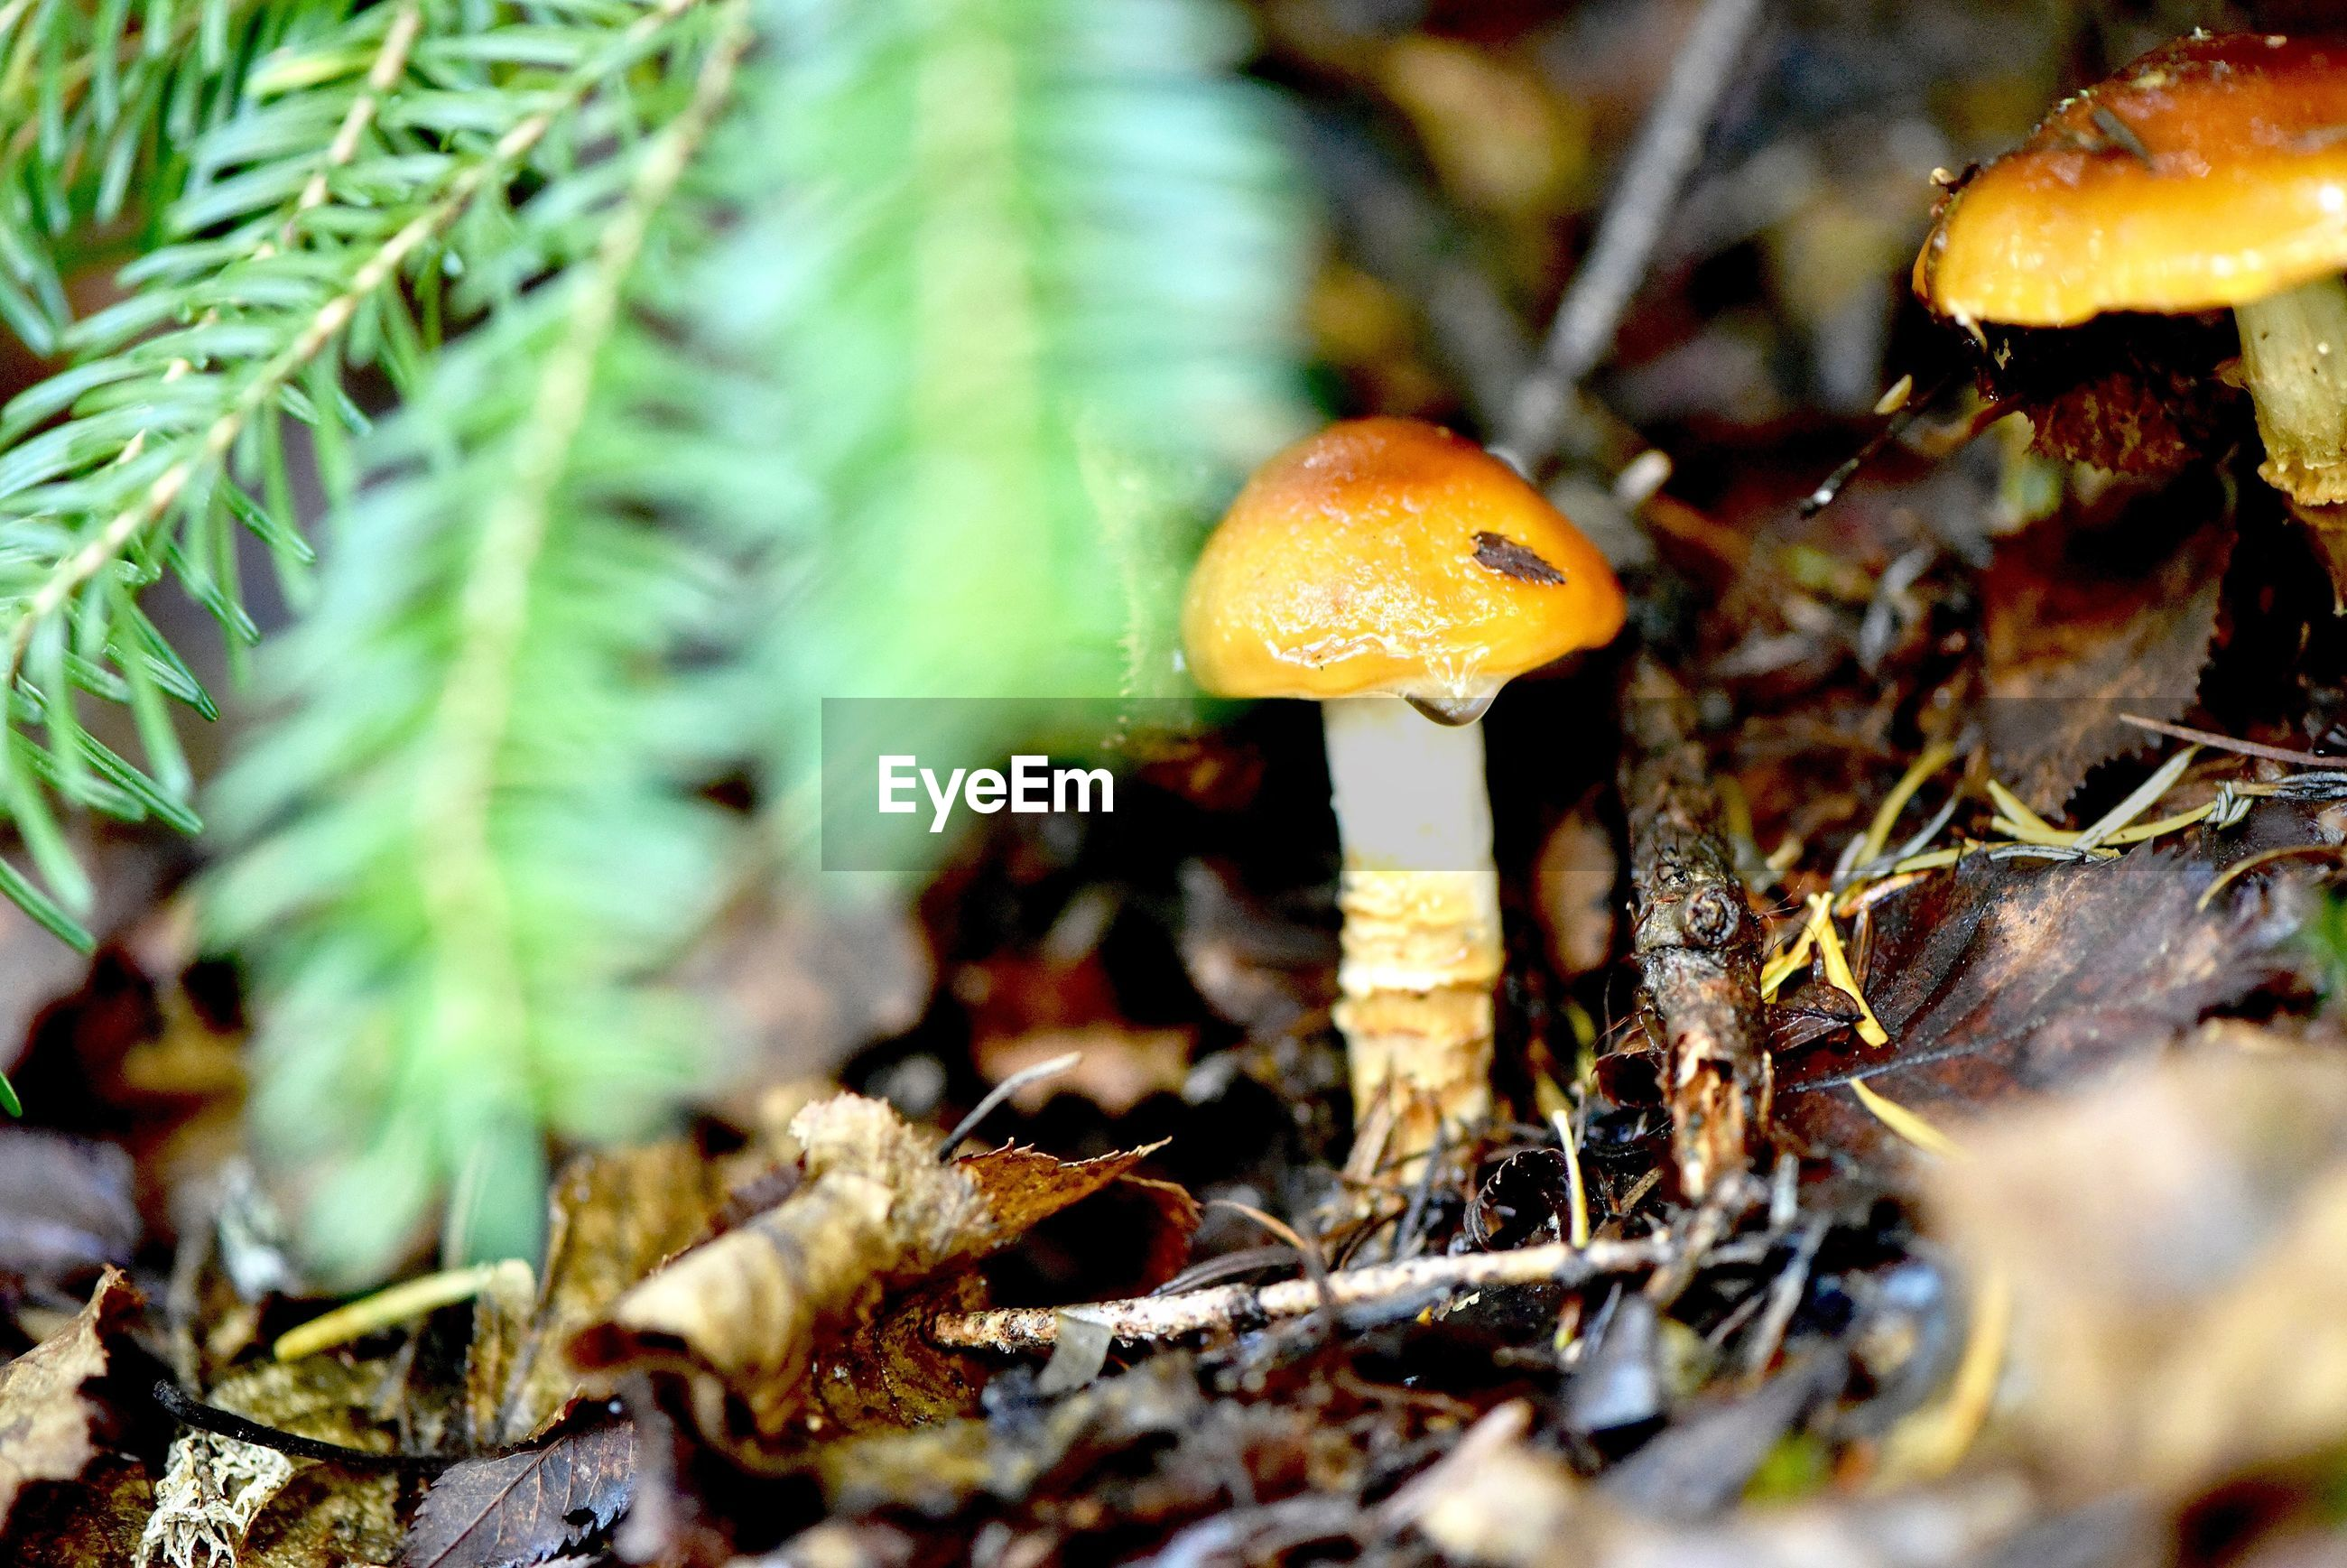 fungus, vegetable, growth, mushroom, plant, food, land, selective focus, field, close-up, nature, no people, beauty in nature, toadstool, day, vulnerability, fly agaric mushroom, leaf, plant part, fragility, outdoors, surface level, poisonous